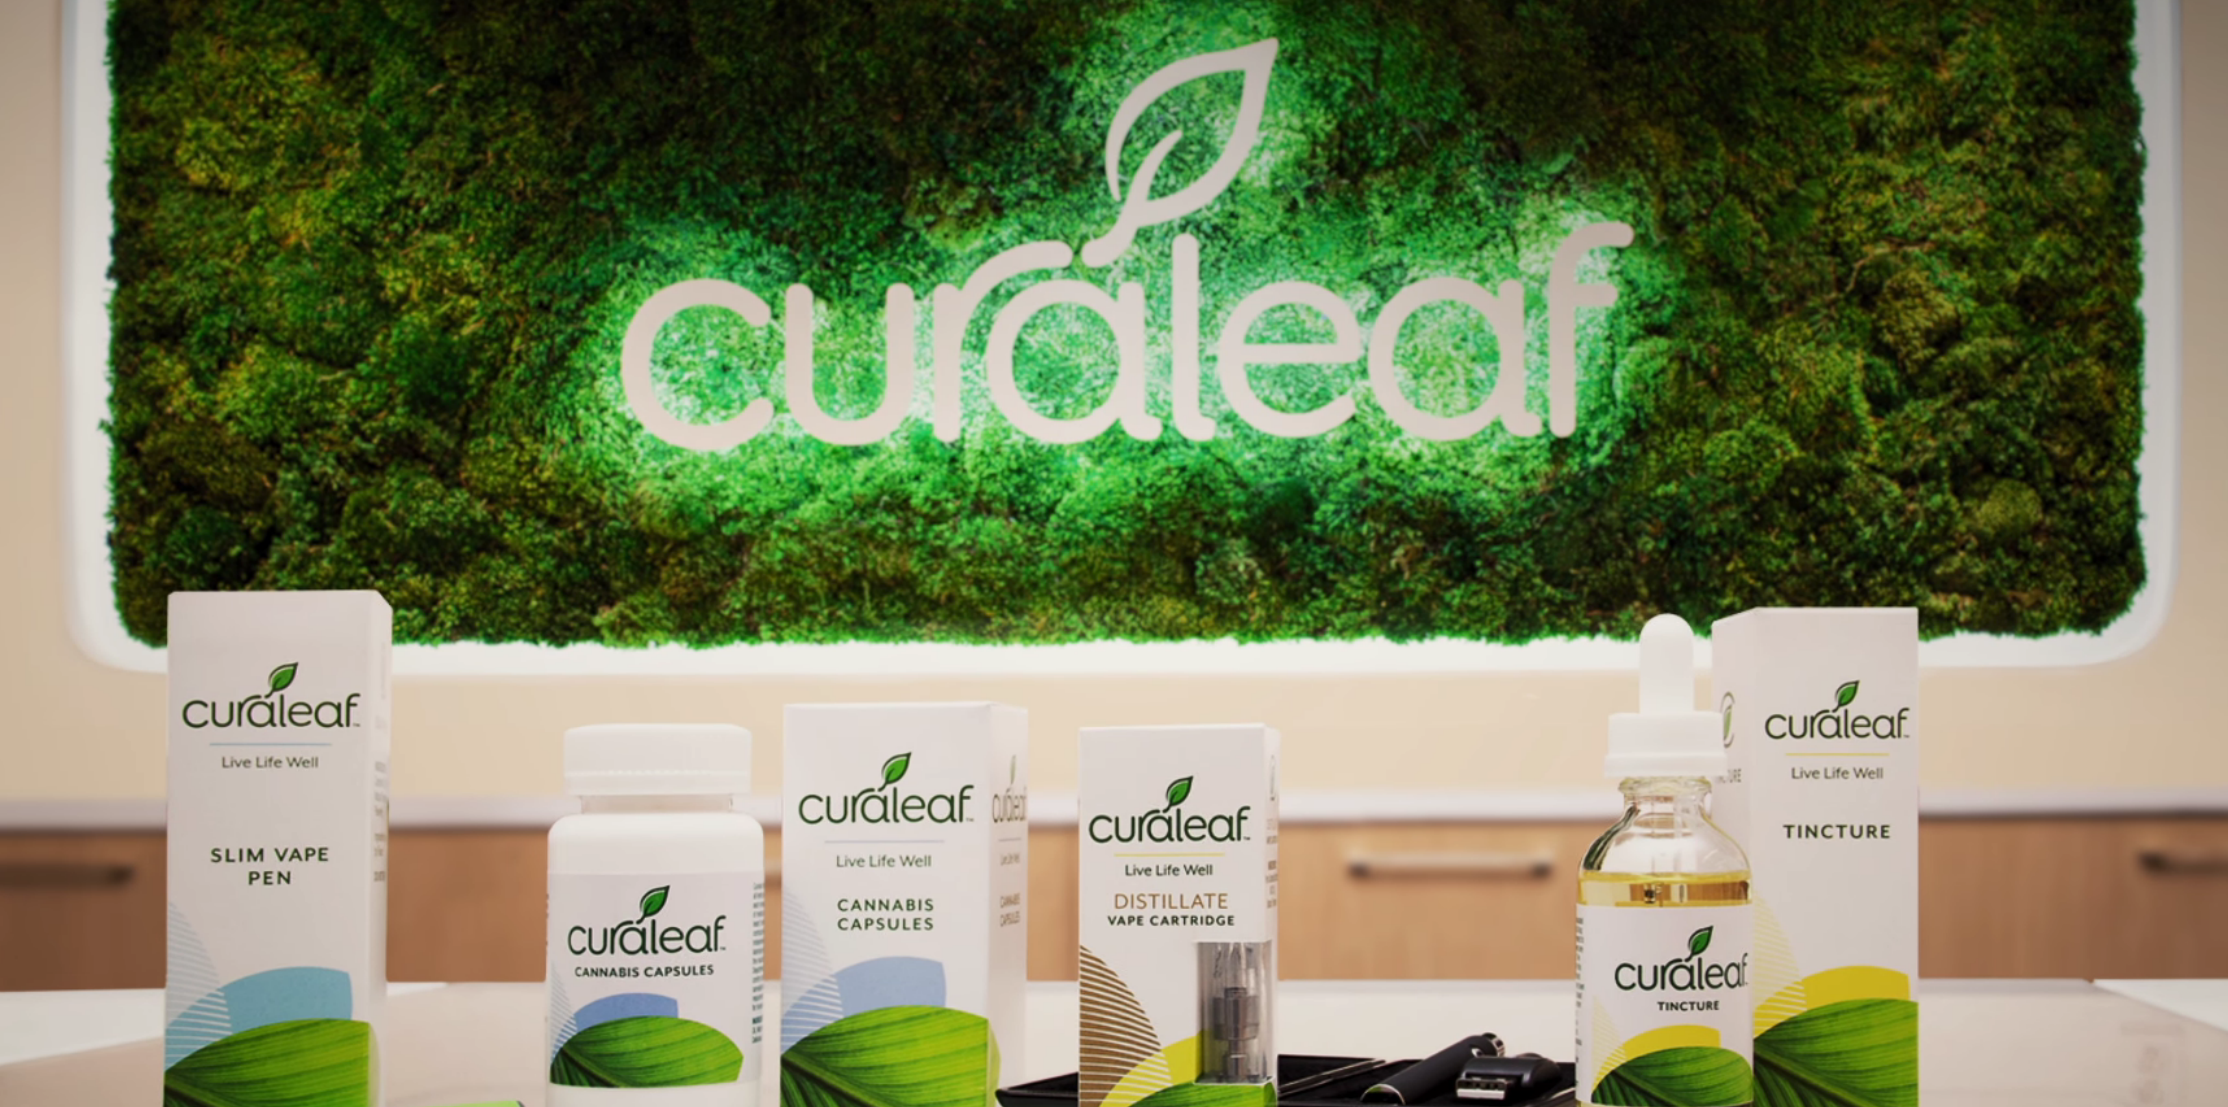 Curaleaf reports revenue miss but is forecasting $1 billion